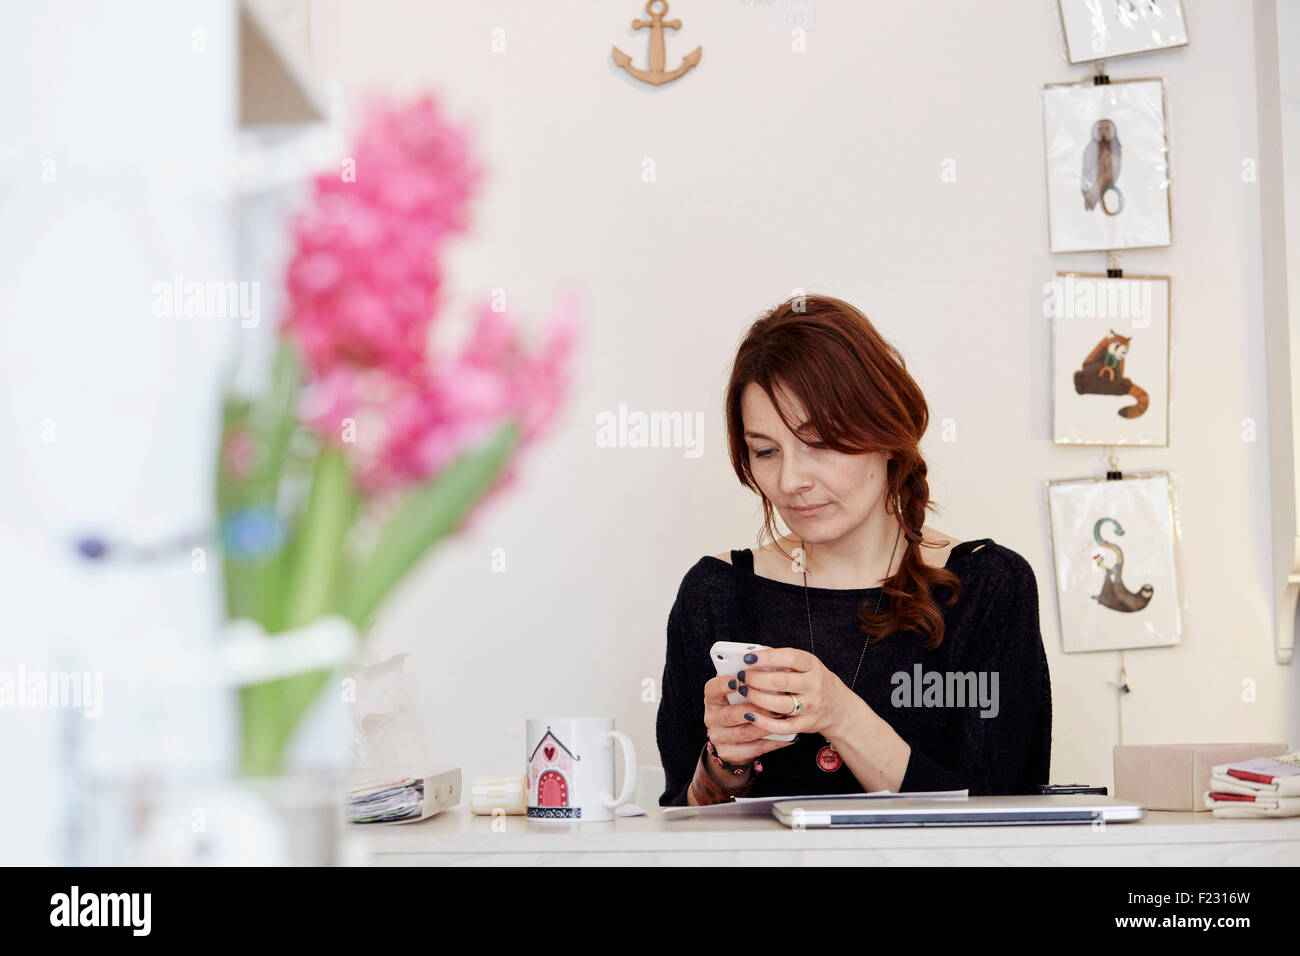 A woman sitting at a desk in a small gift shop, managing the business, making a call on a smart phone. - Stock Image